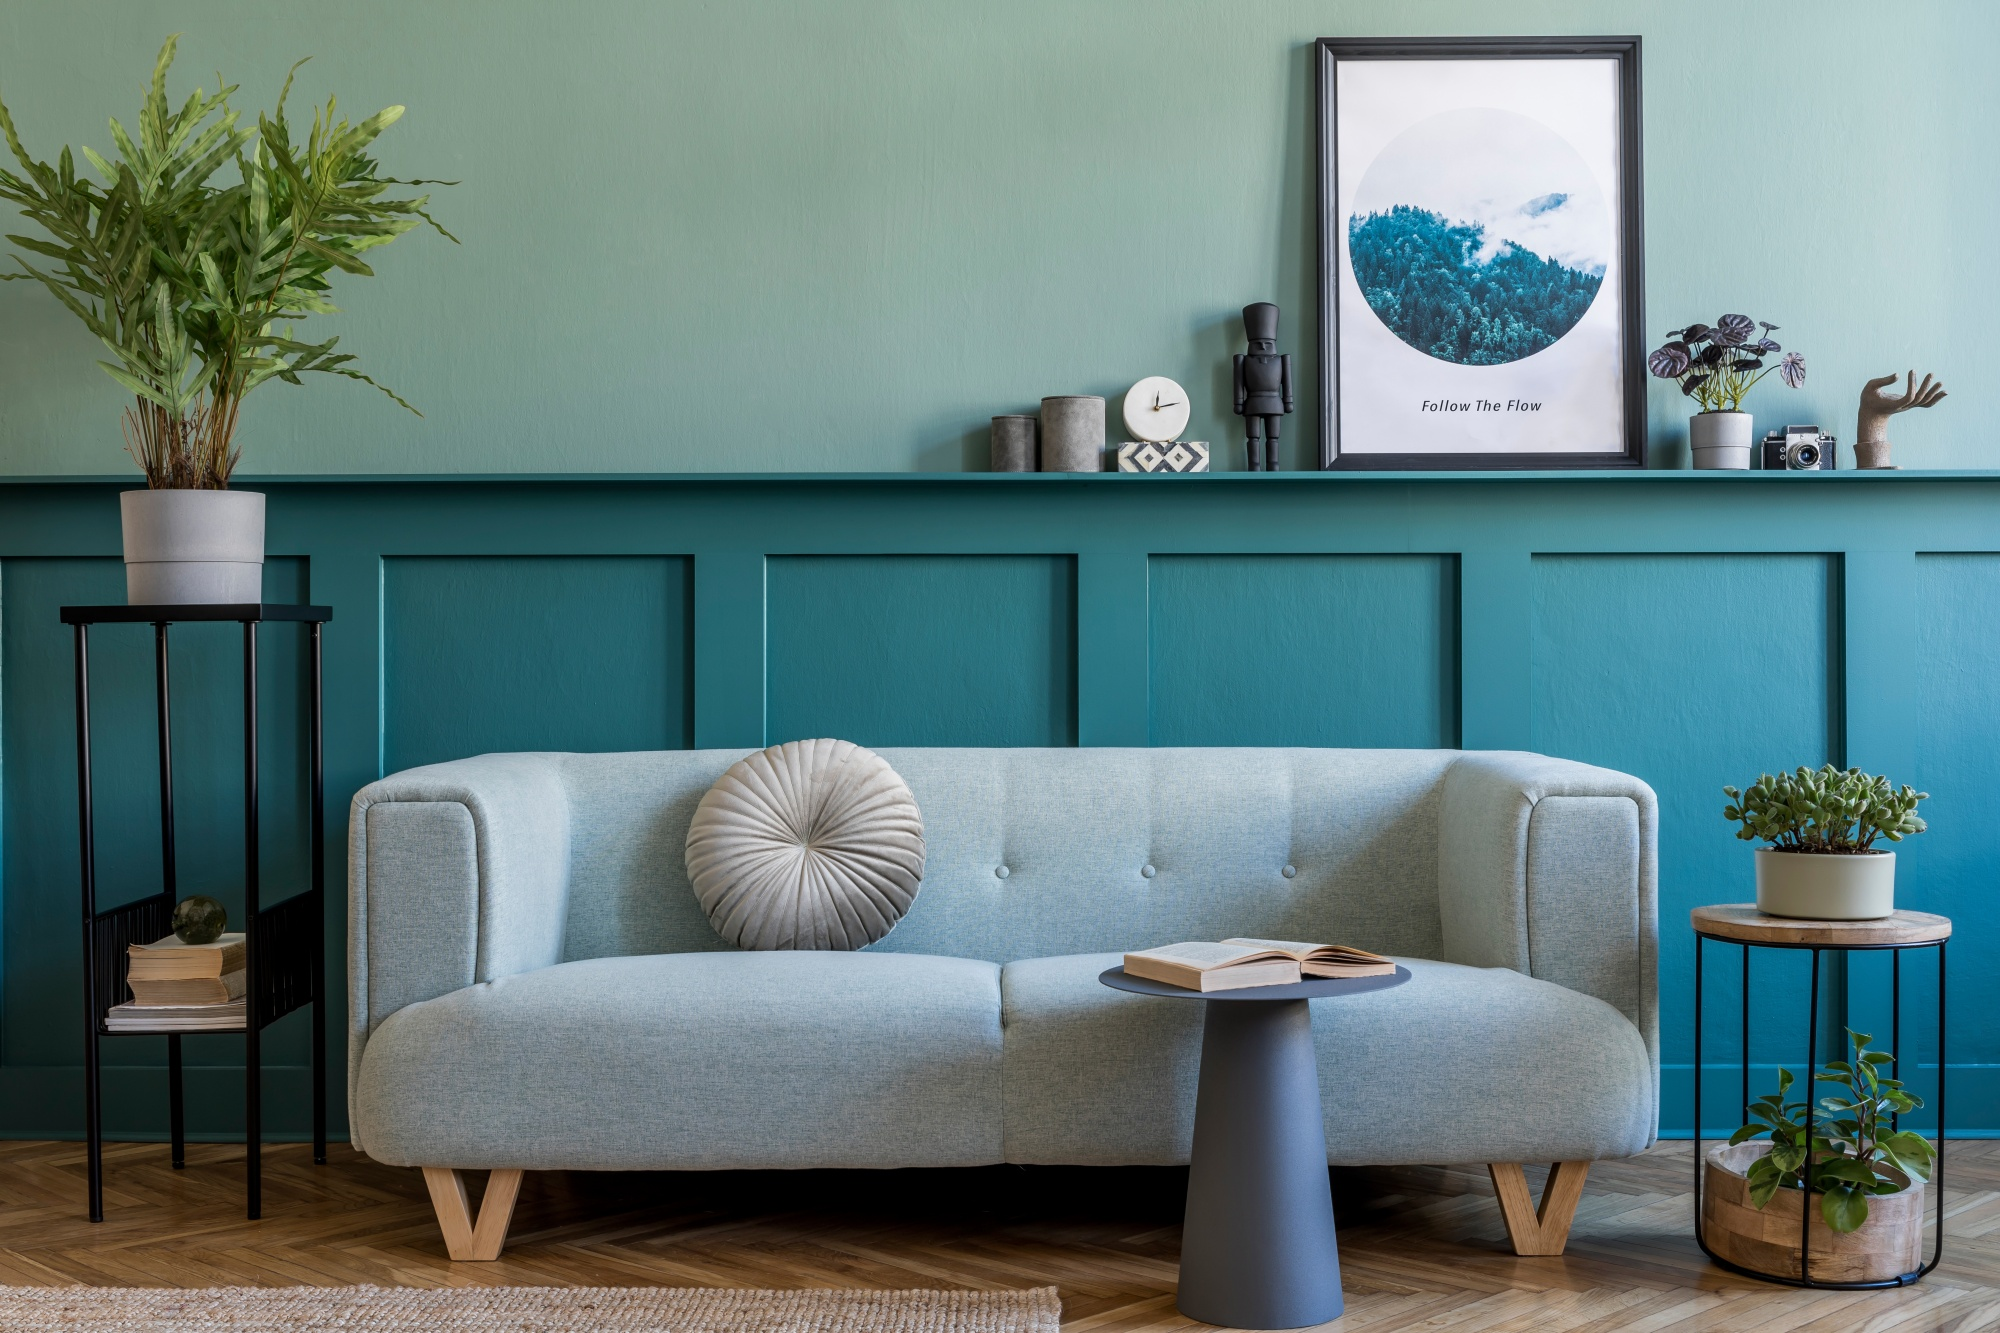 Japandi design muted green wall mixed with neutral colored couch and decor